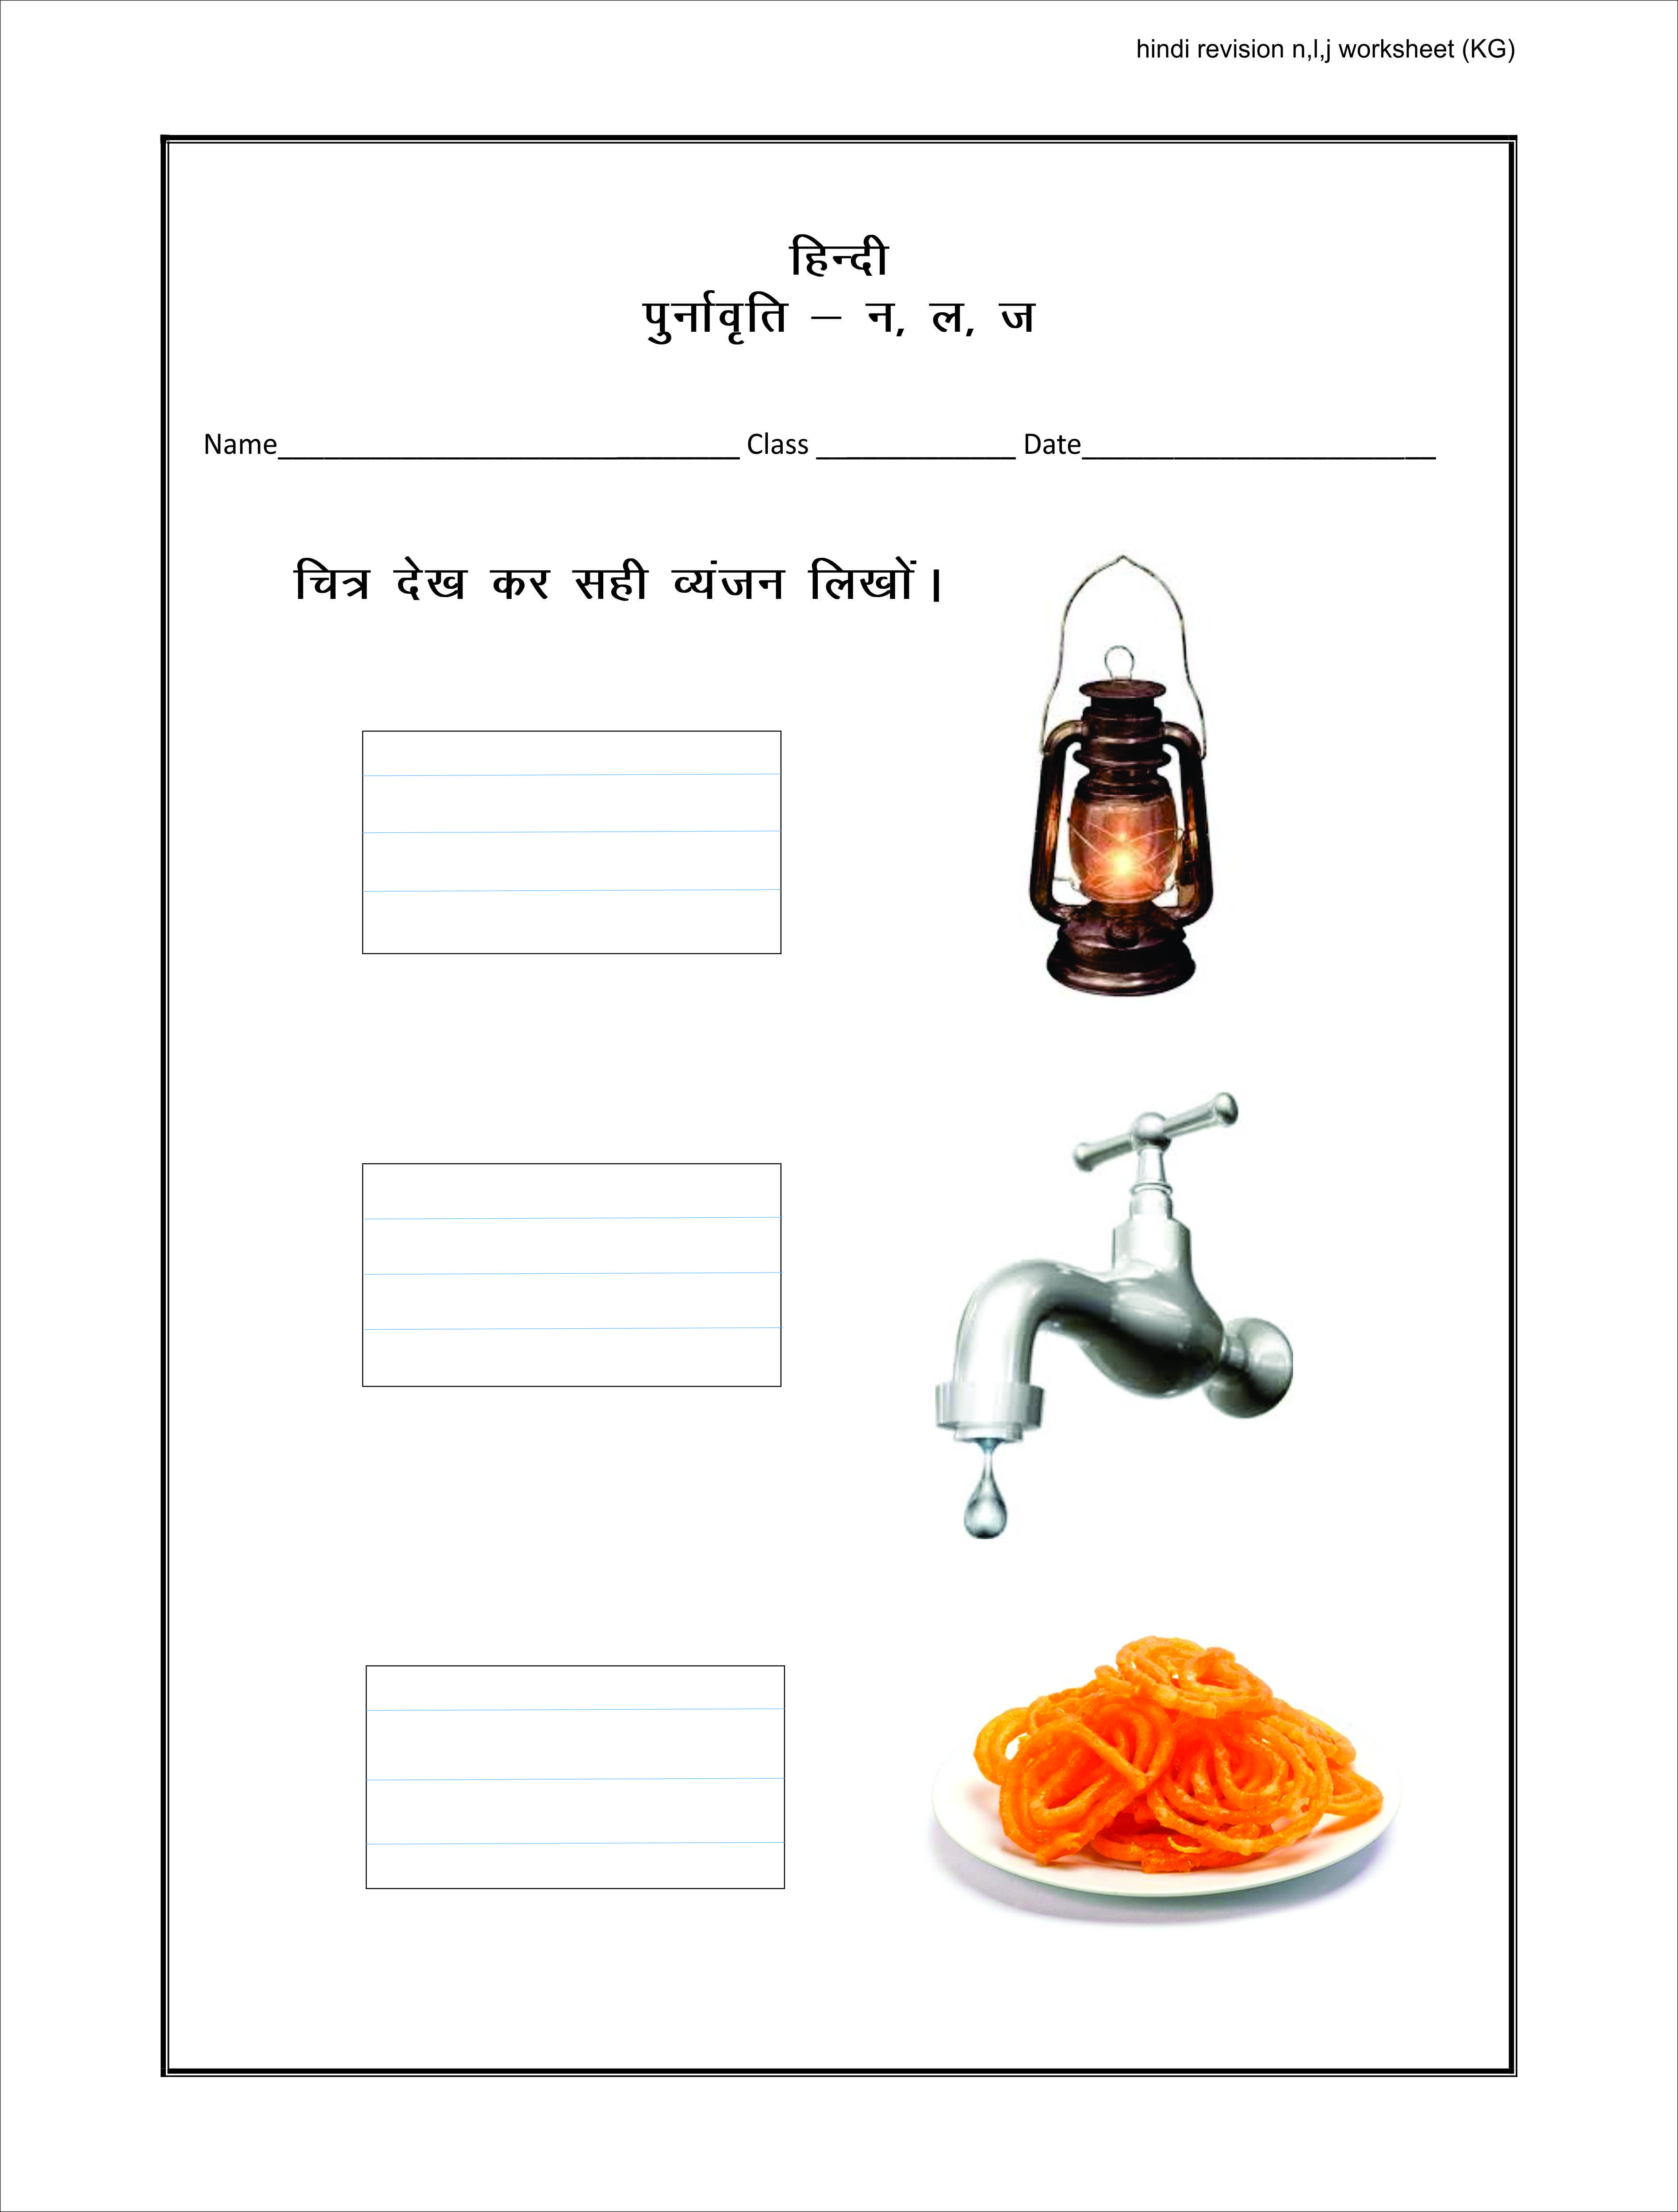 hindi revision n l j worksheet kg worksheets worksheets